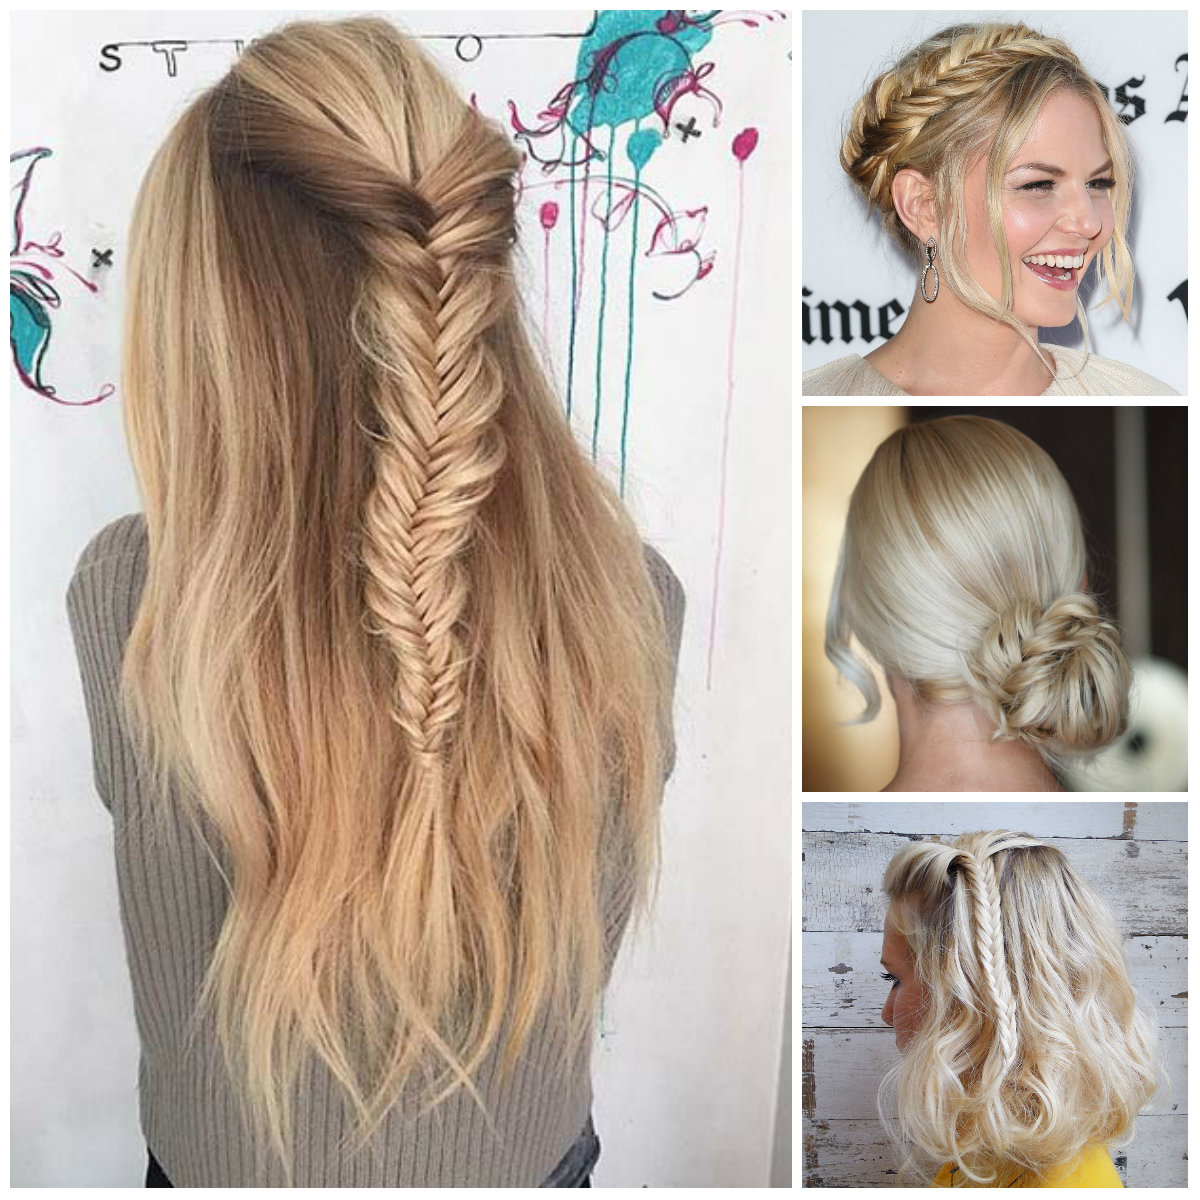 2016 Hottest Hairstyles with Fishtail Braids | 2019 Haircuts ...